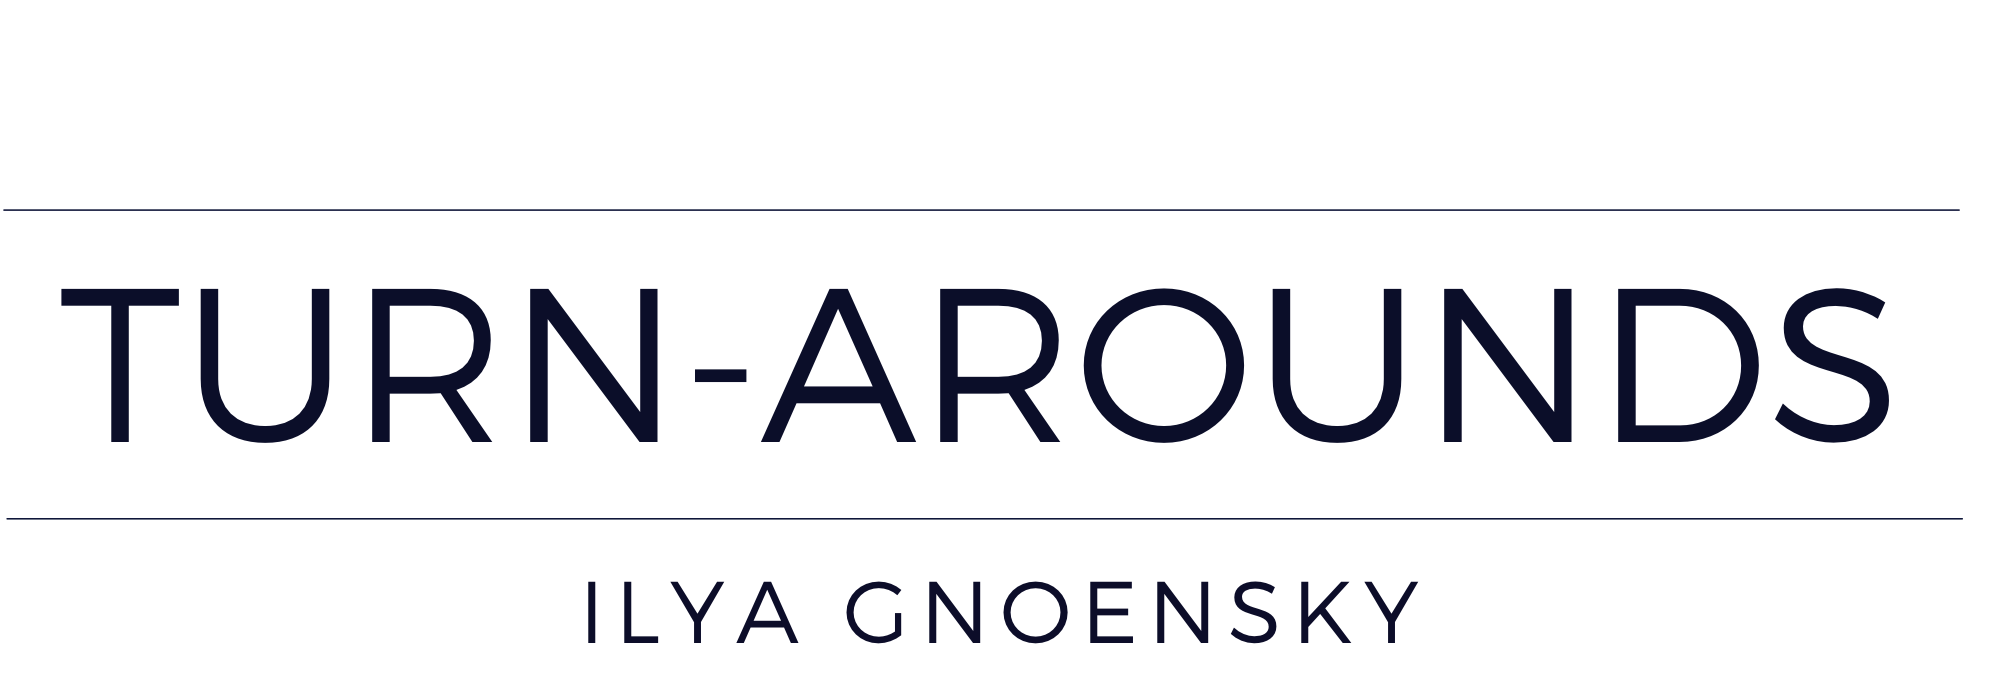 logo3 with name.png